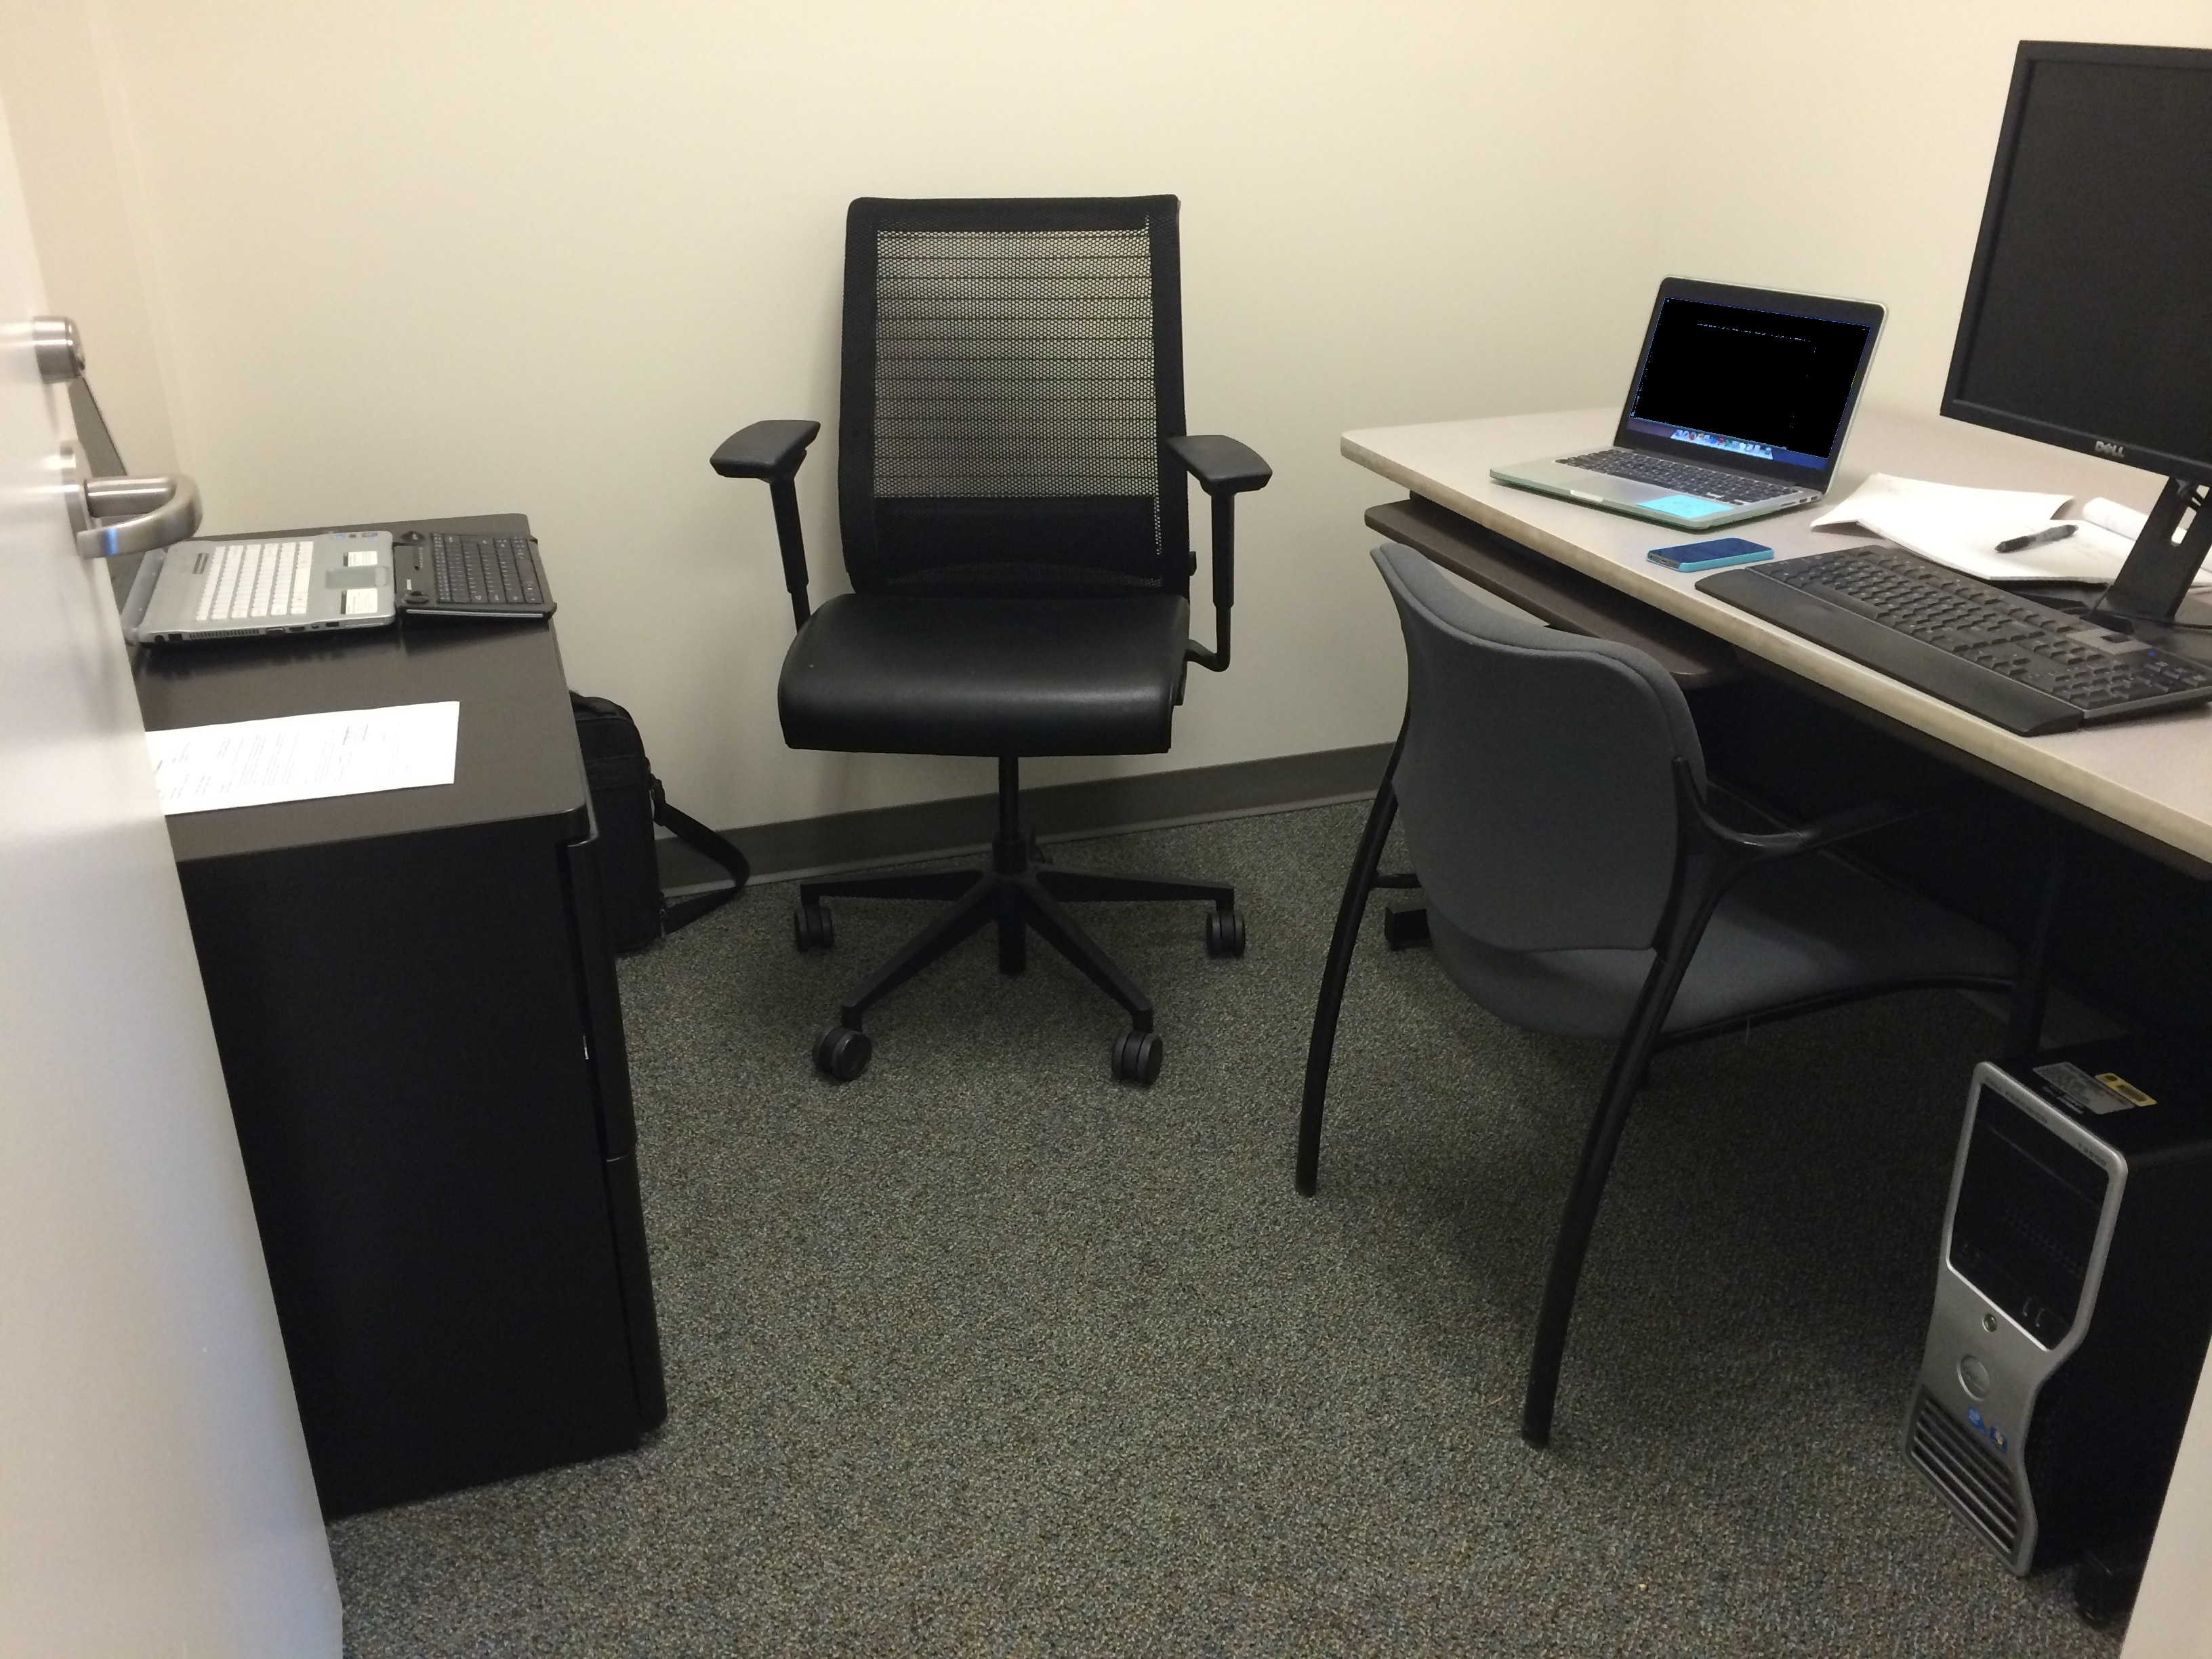 sample office technology showing a computer and several laptops